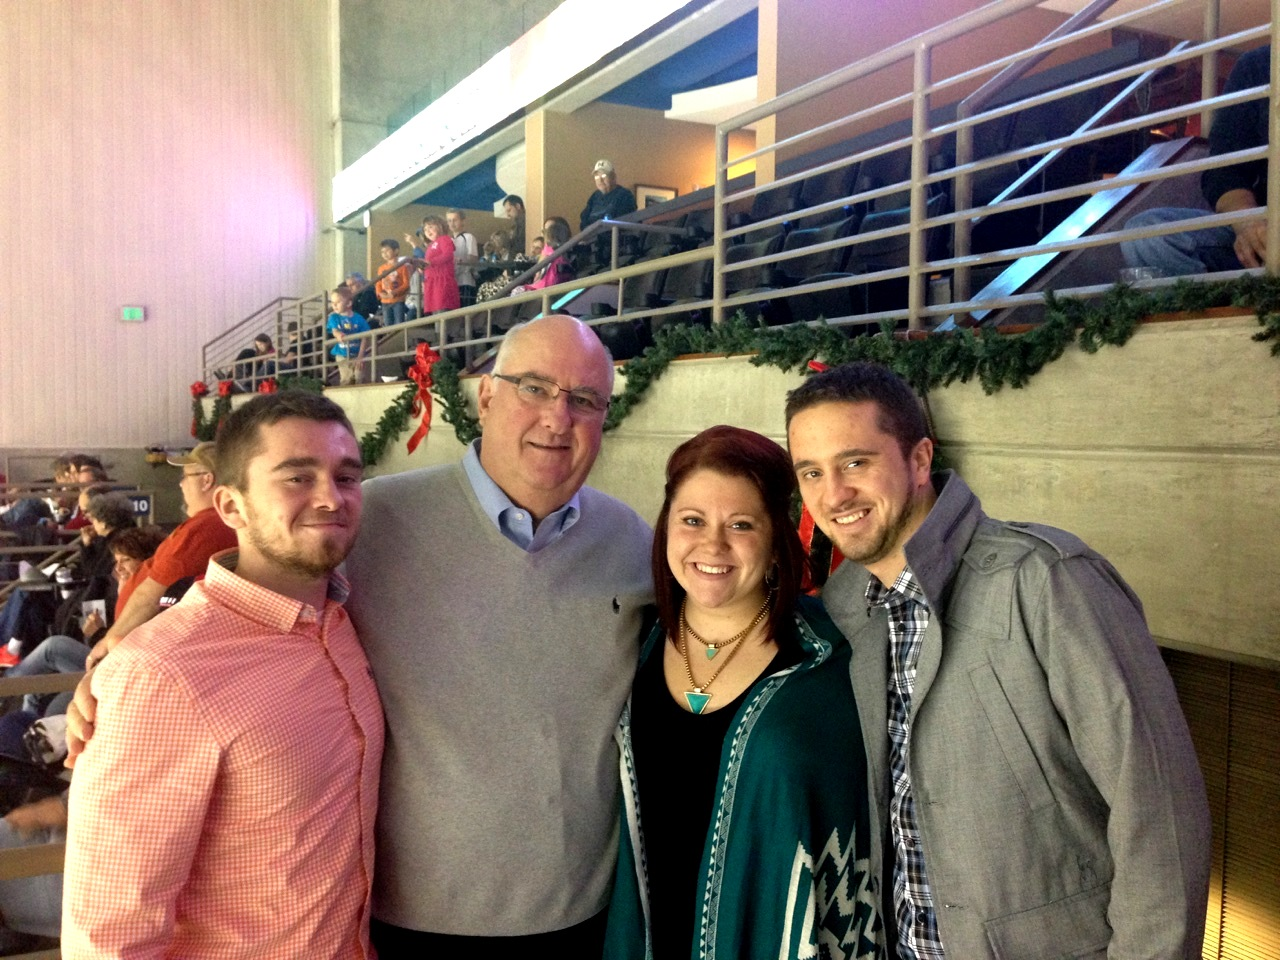 The annual Komets Thanksgiving night game is a tradition for myself, my brothers and my grandpa!